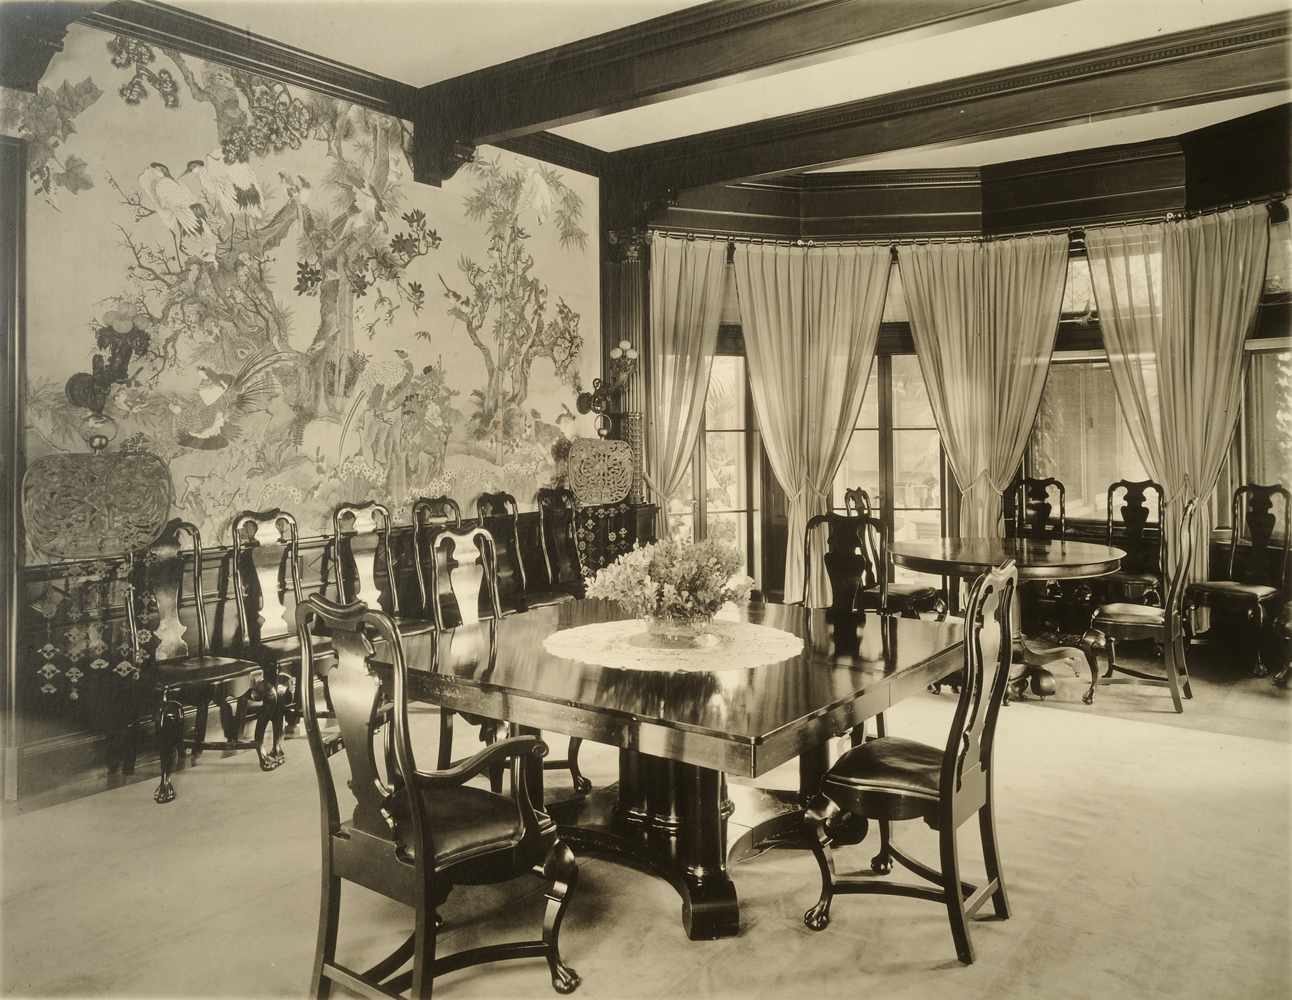 Dining Room at Weld by Thomas E. Marr, 1905